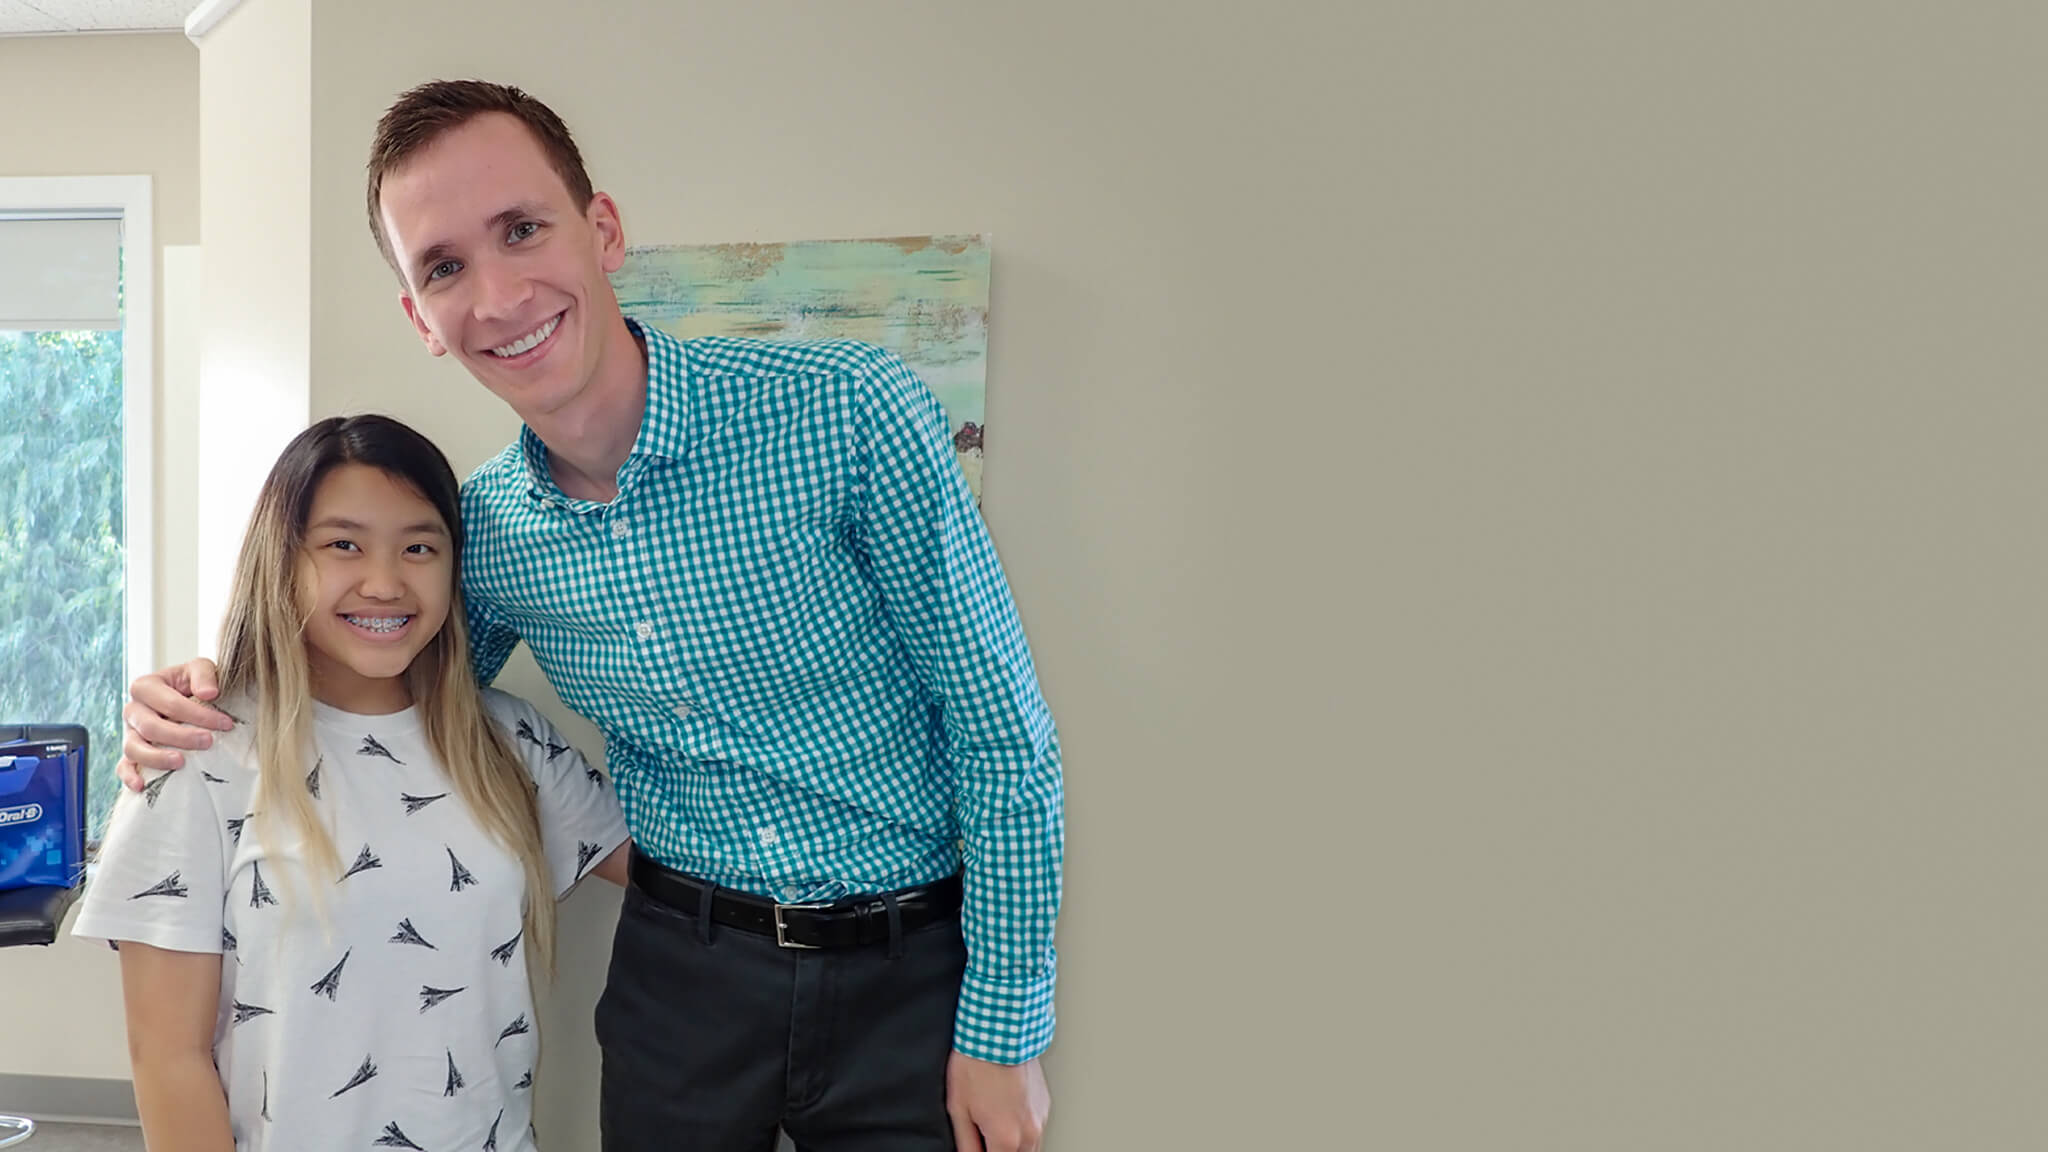 Doctor pictured next to smiling patient with straight teeth